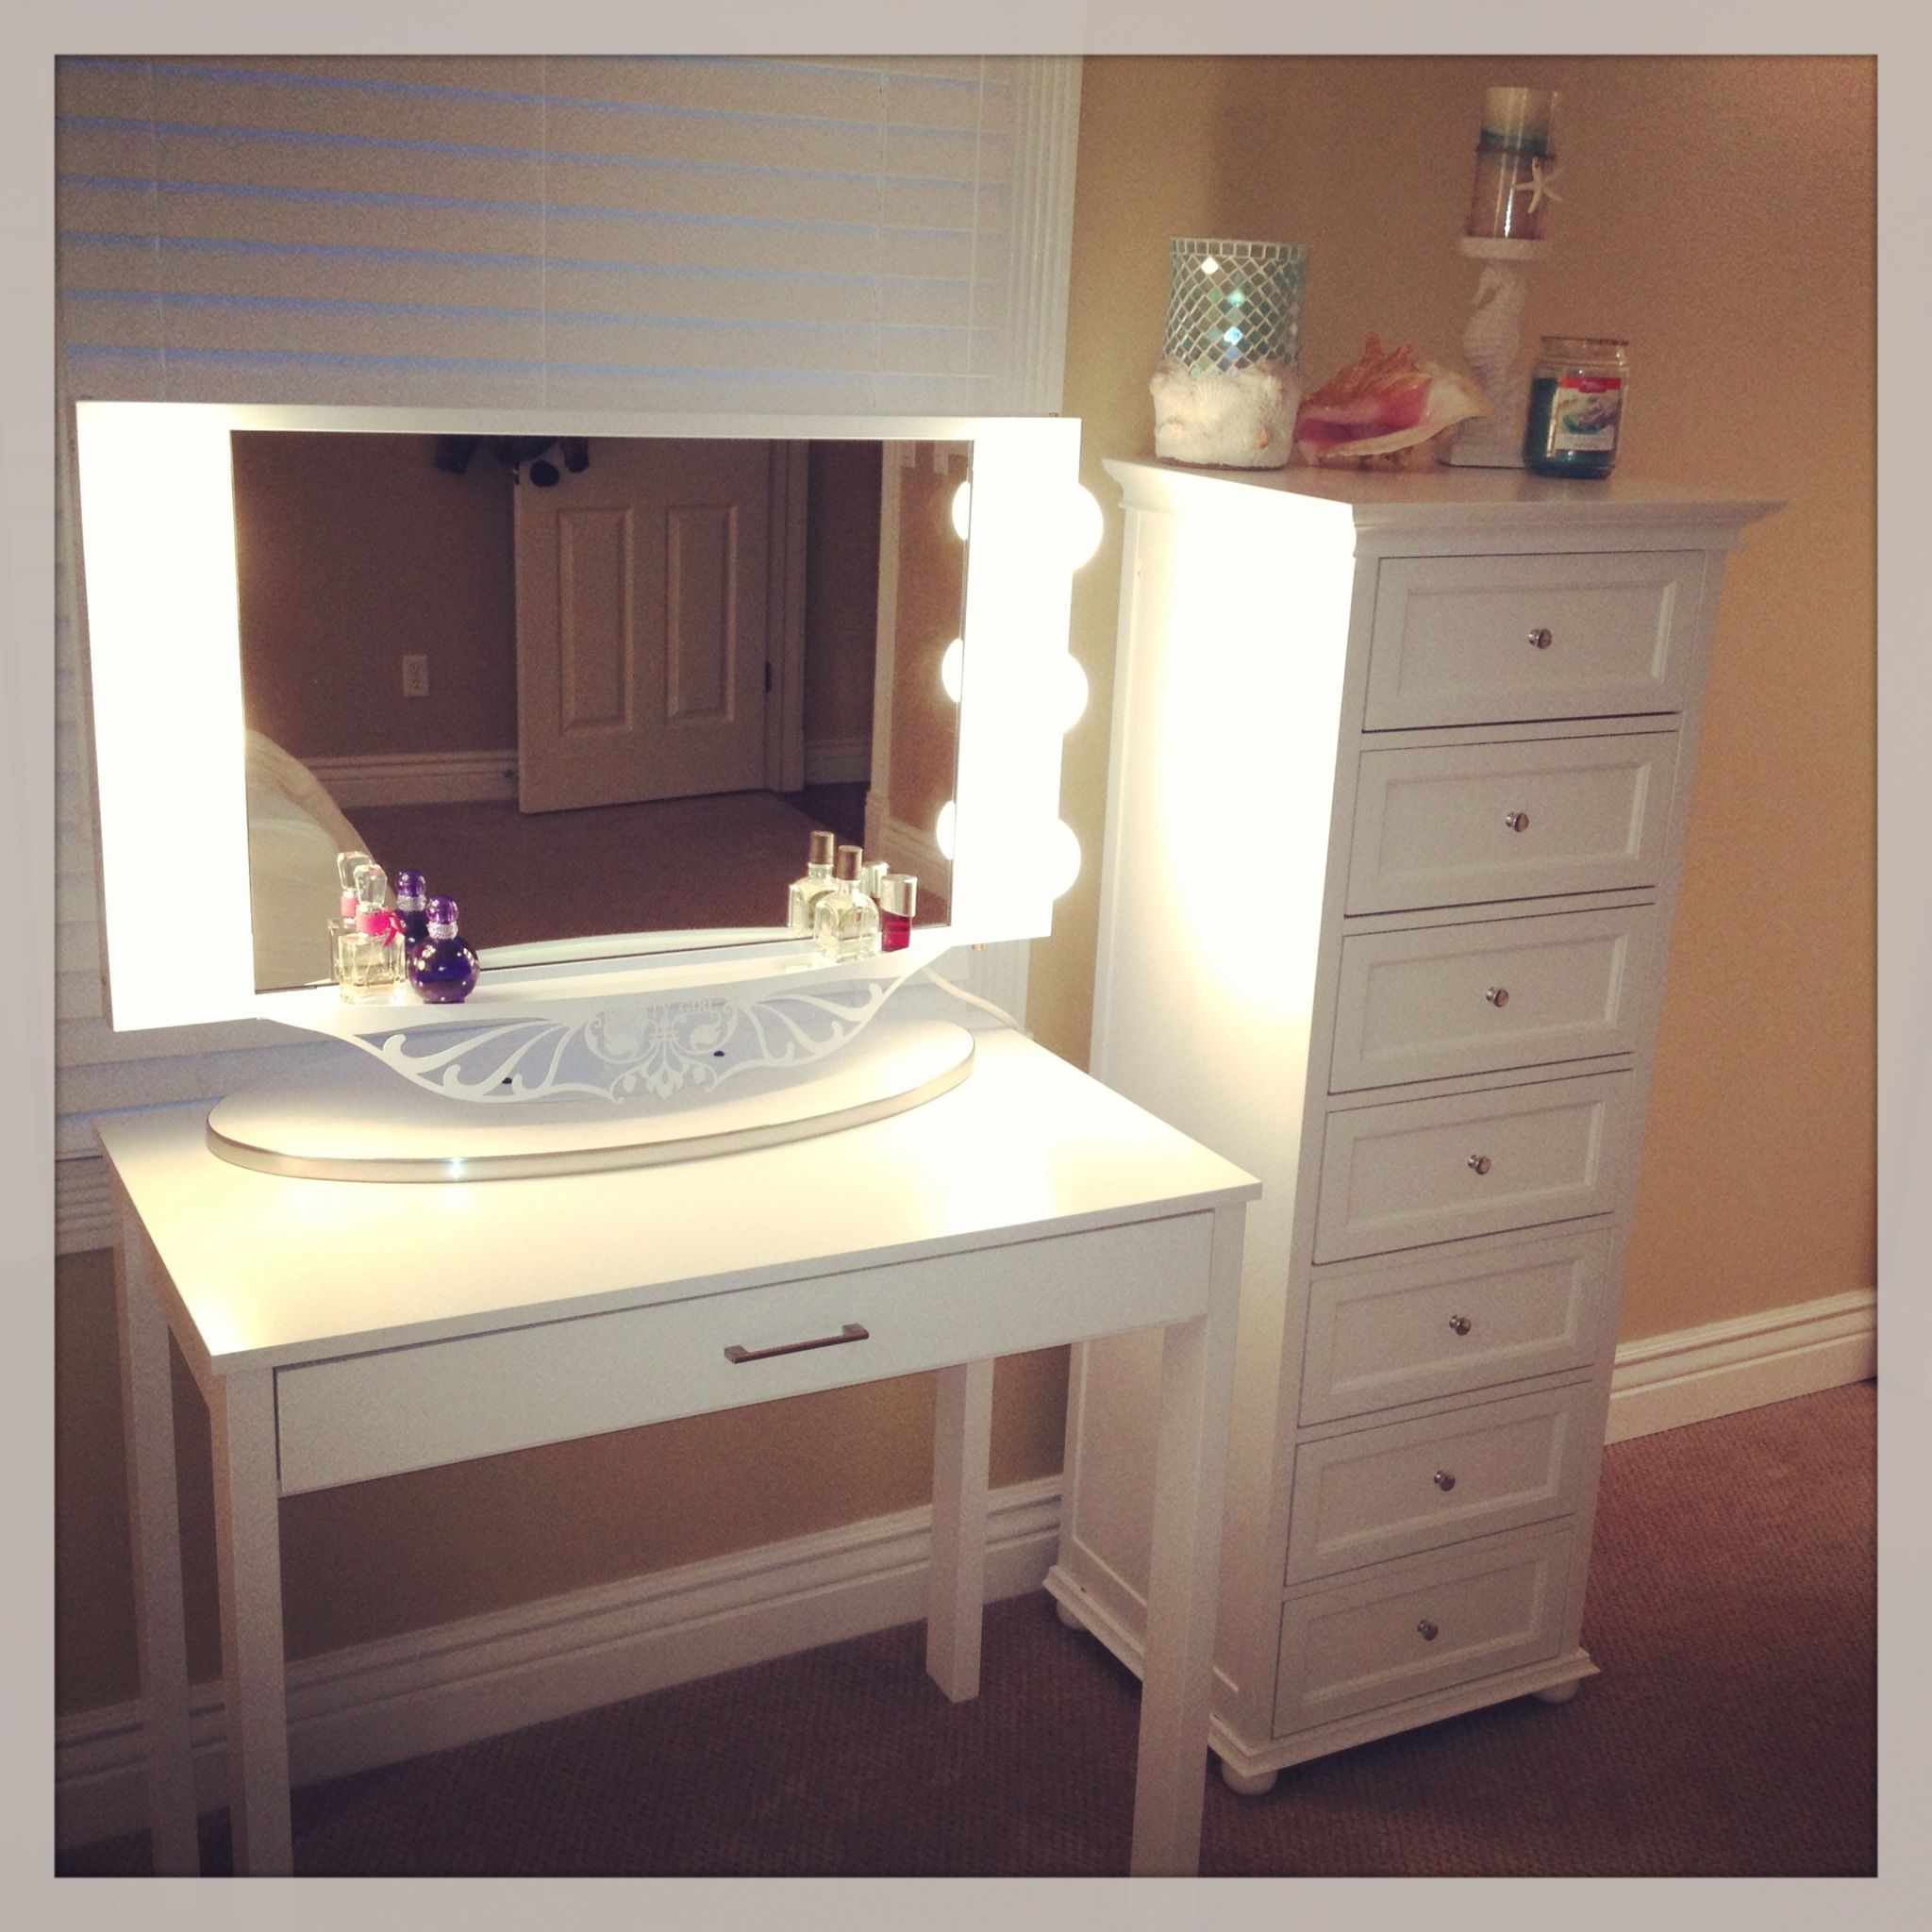 Makeup Desk For A Small Area Desk From Target Drawers From - Bathroom vanity with makeup counter for bathroom decor ideas